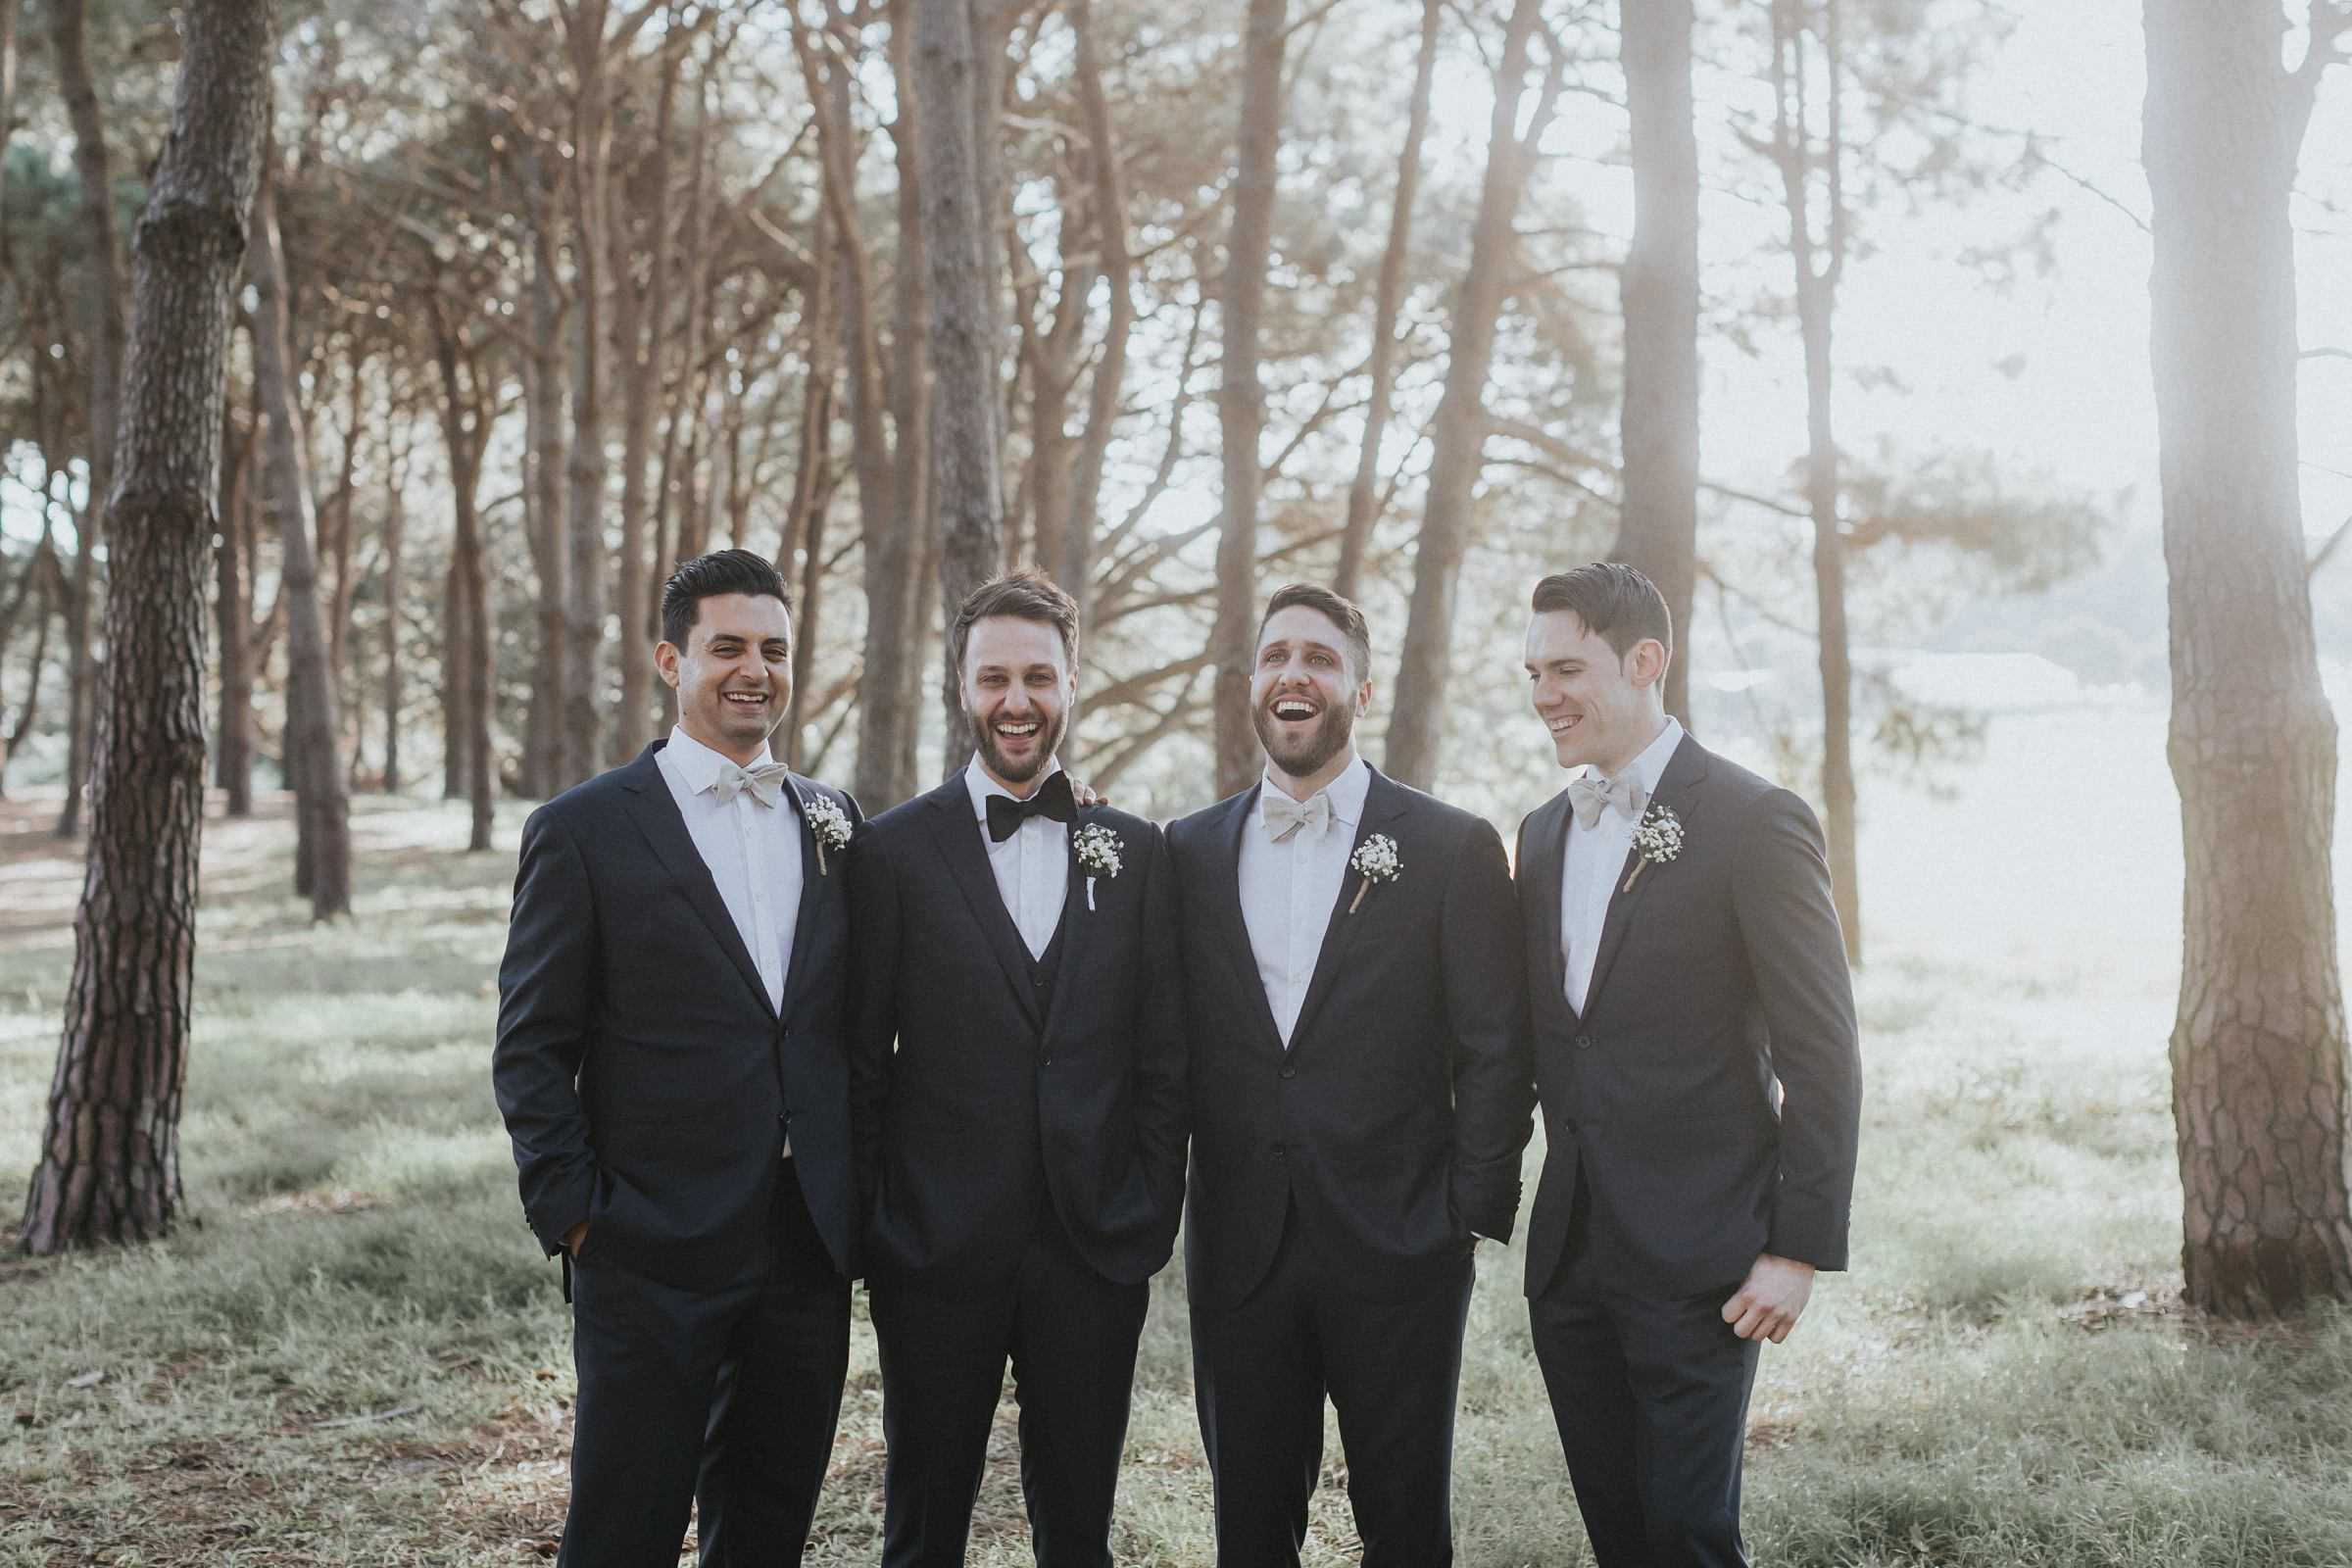 groomsmen laughing in the pine groves during portraits in sydney